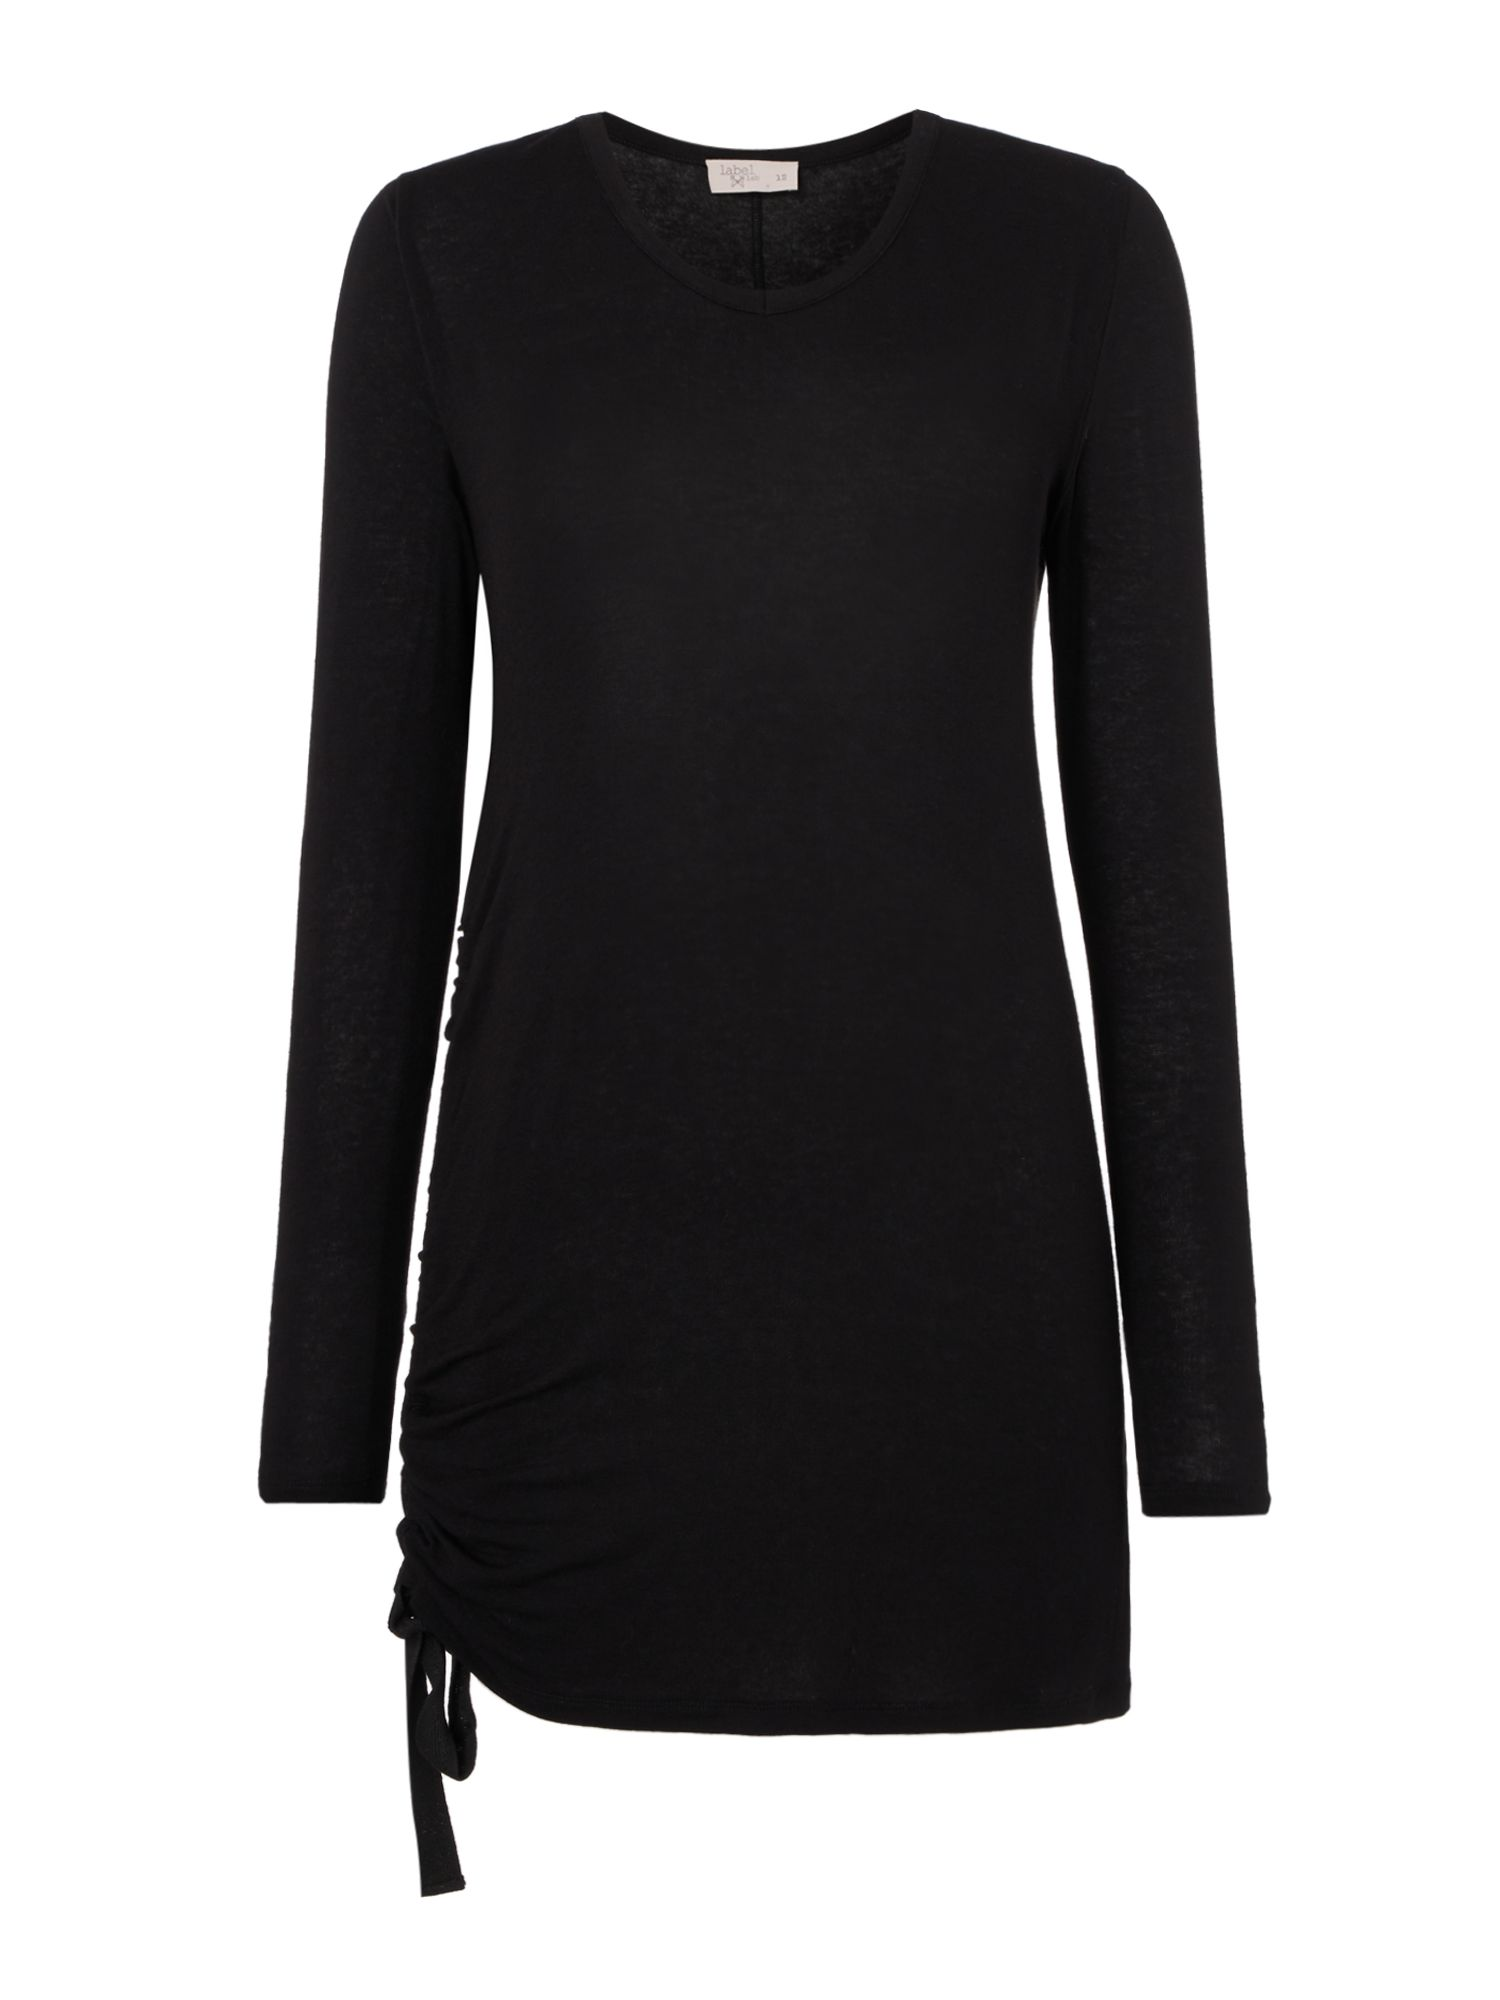 Label Lab Ruche Tape Top, Black